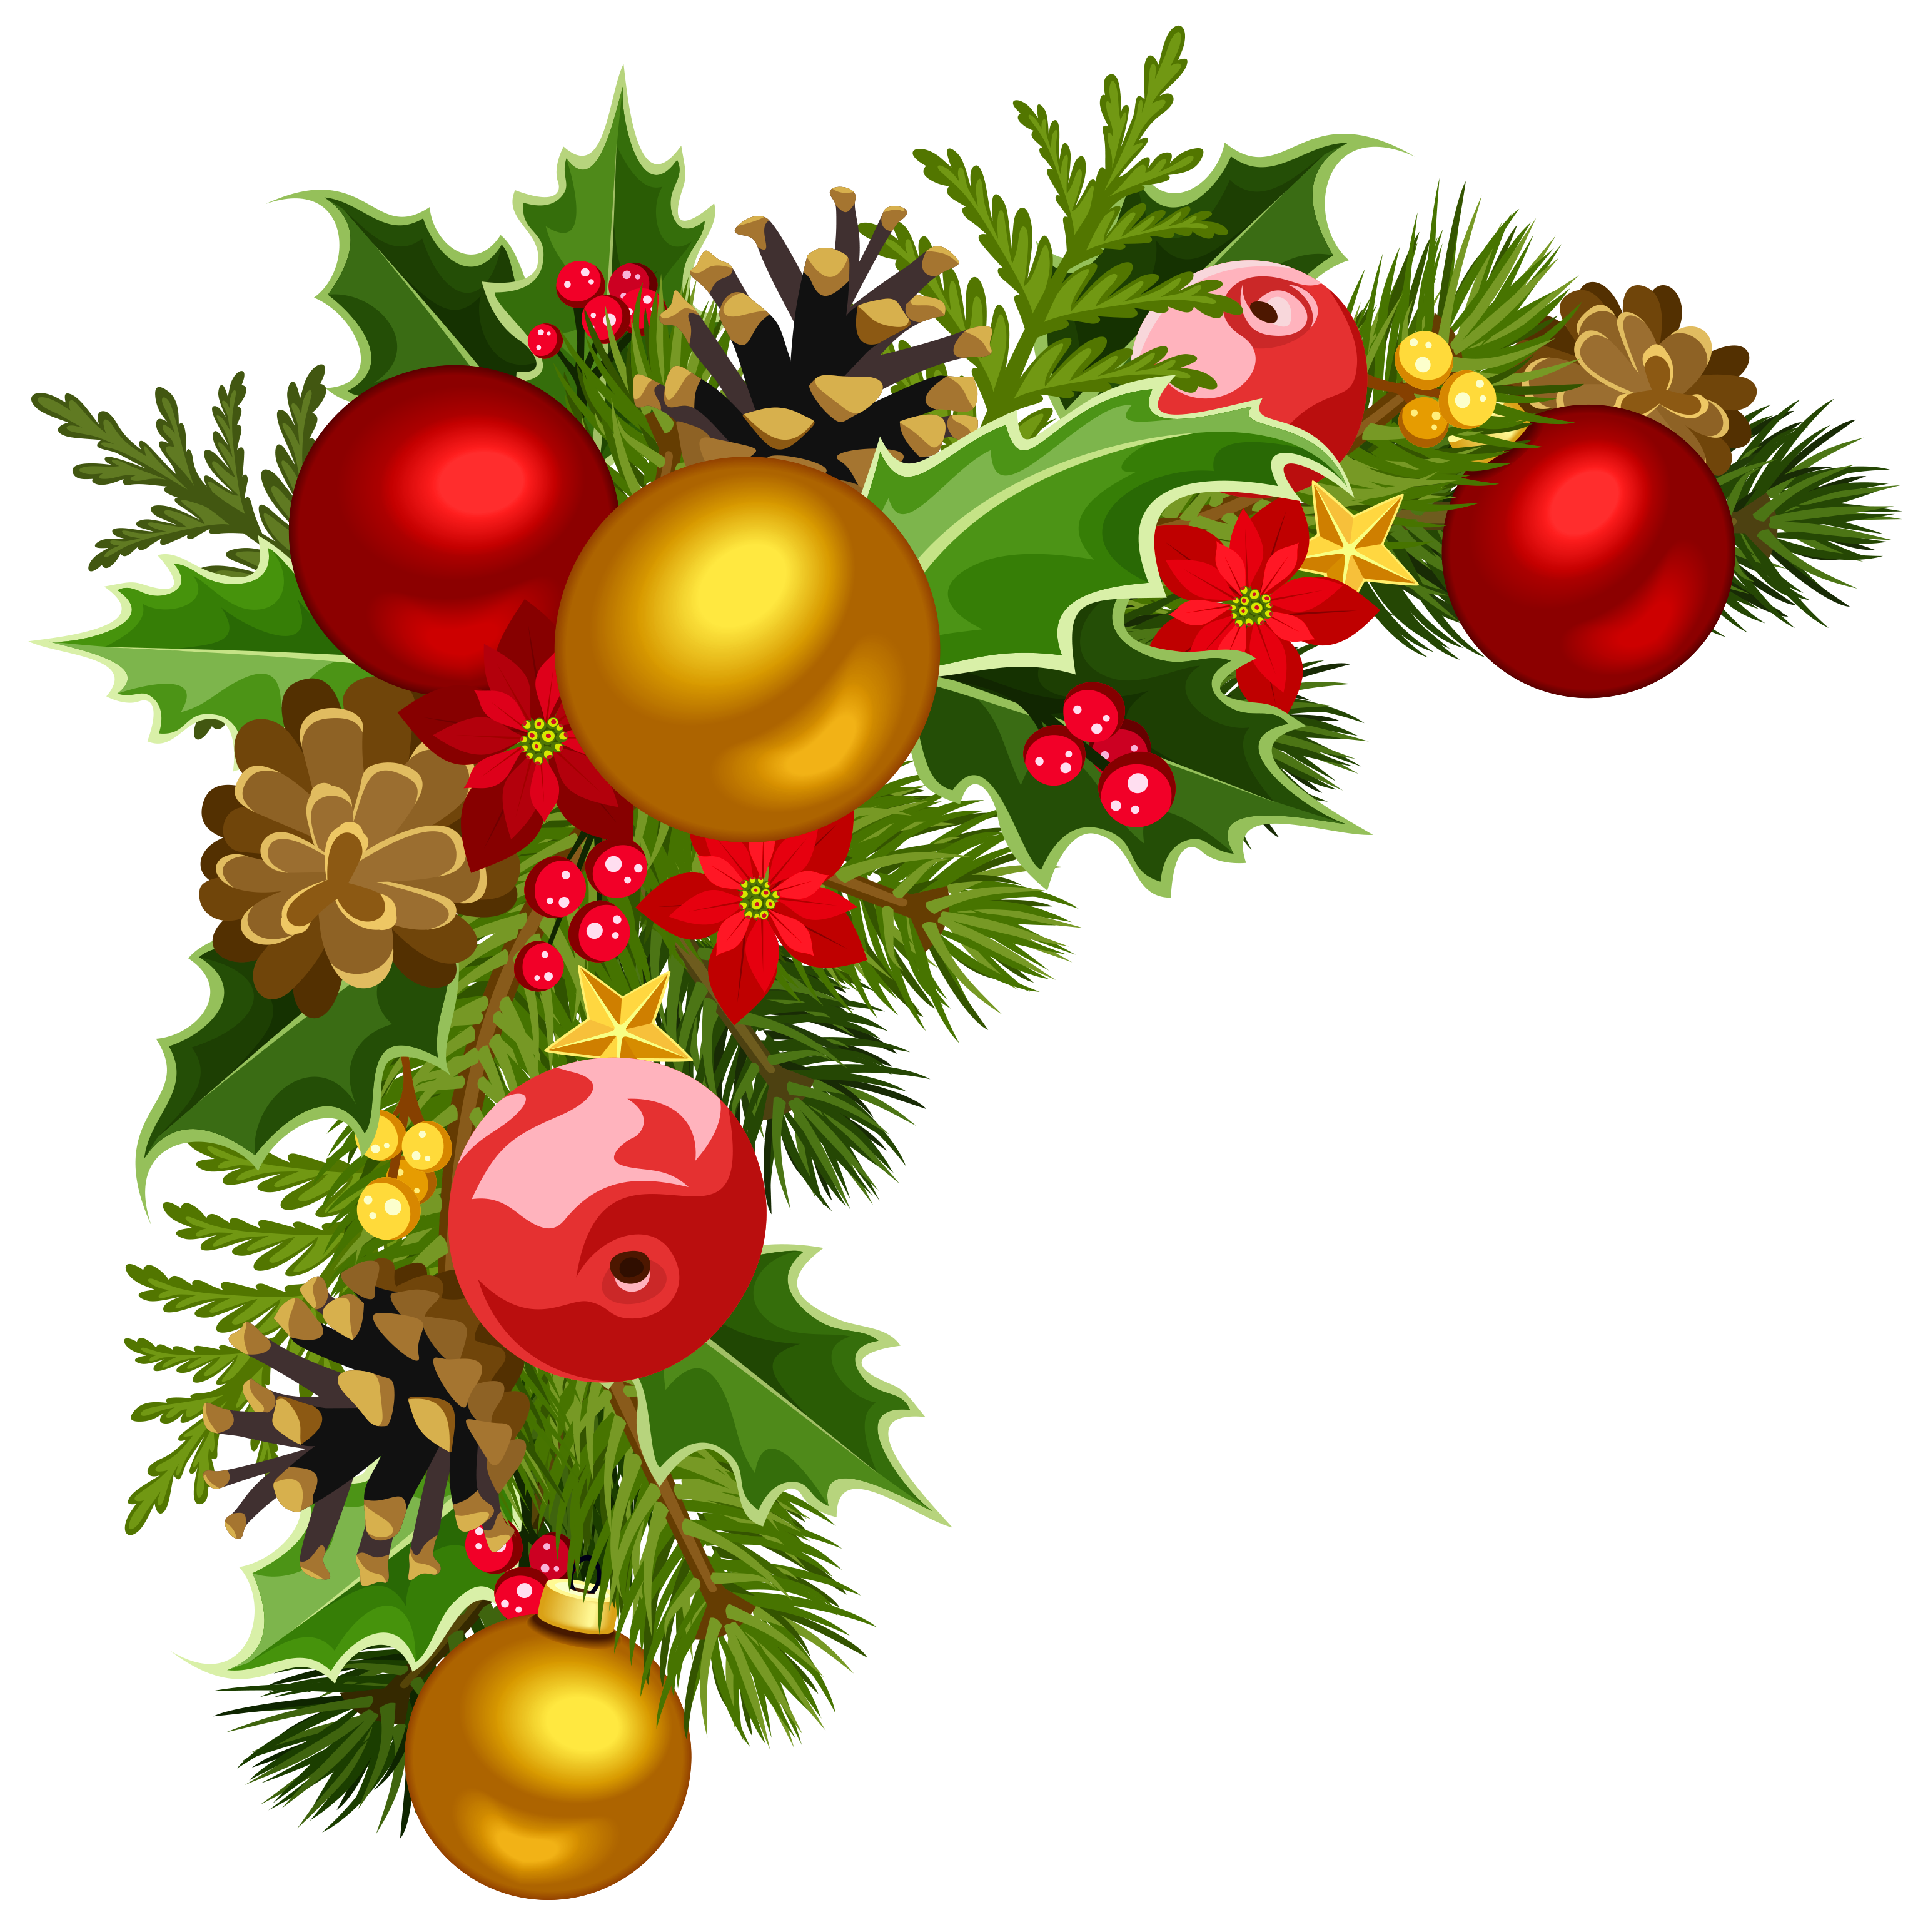 Decorations happy holidays christmasdecorationscliparthappyholidayschristmasdecorationsclipartpng. Dust clipart christmas